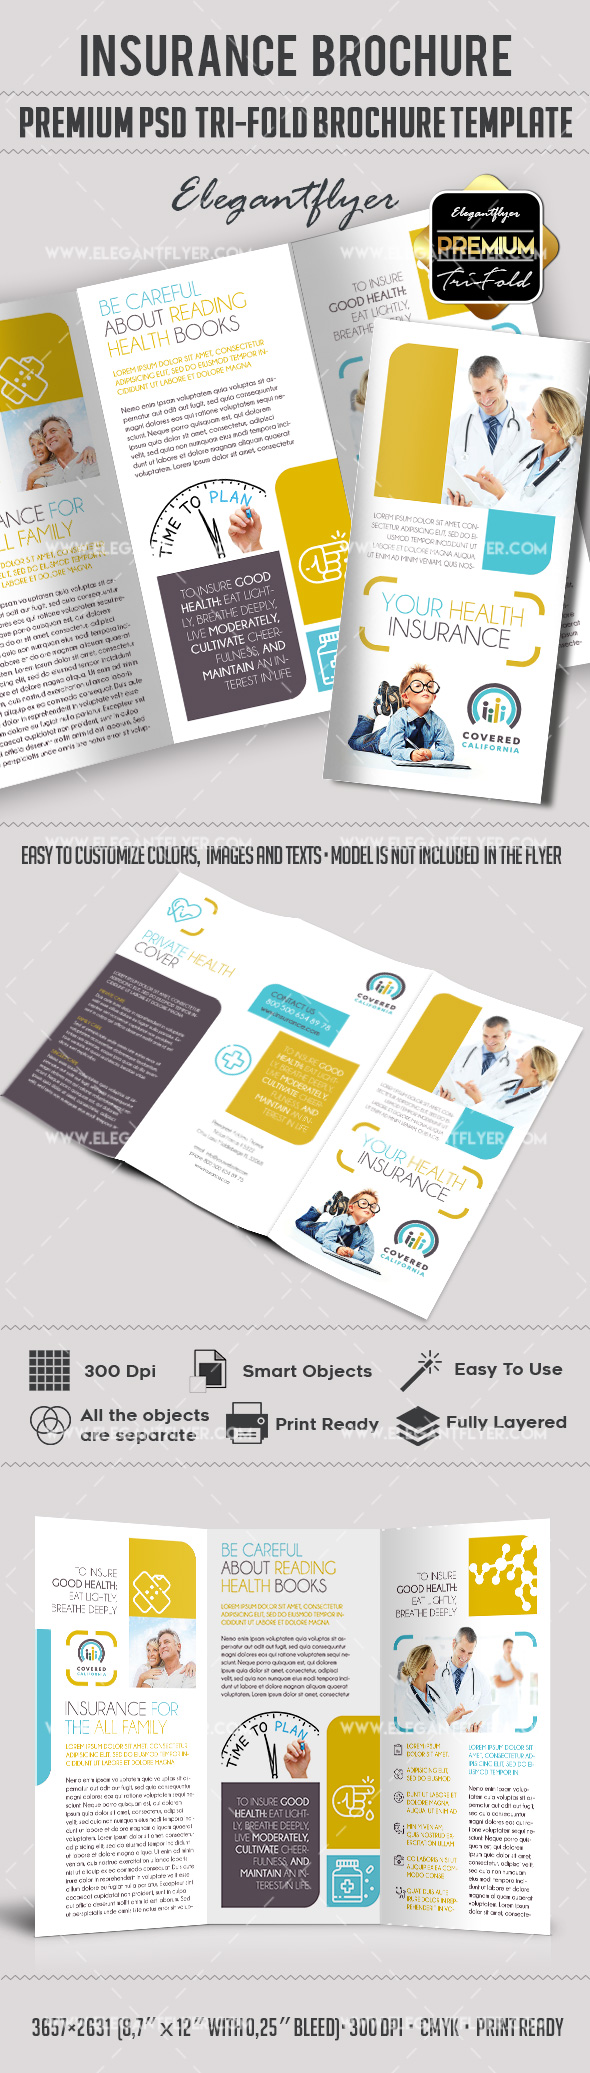 Health insurance psd brochure by elegantflyer for Insurance brochure template